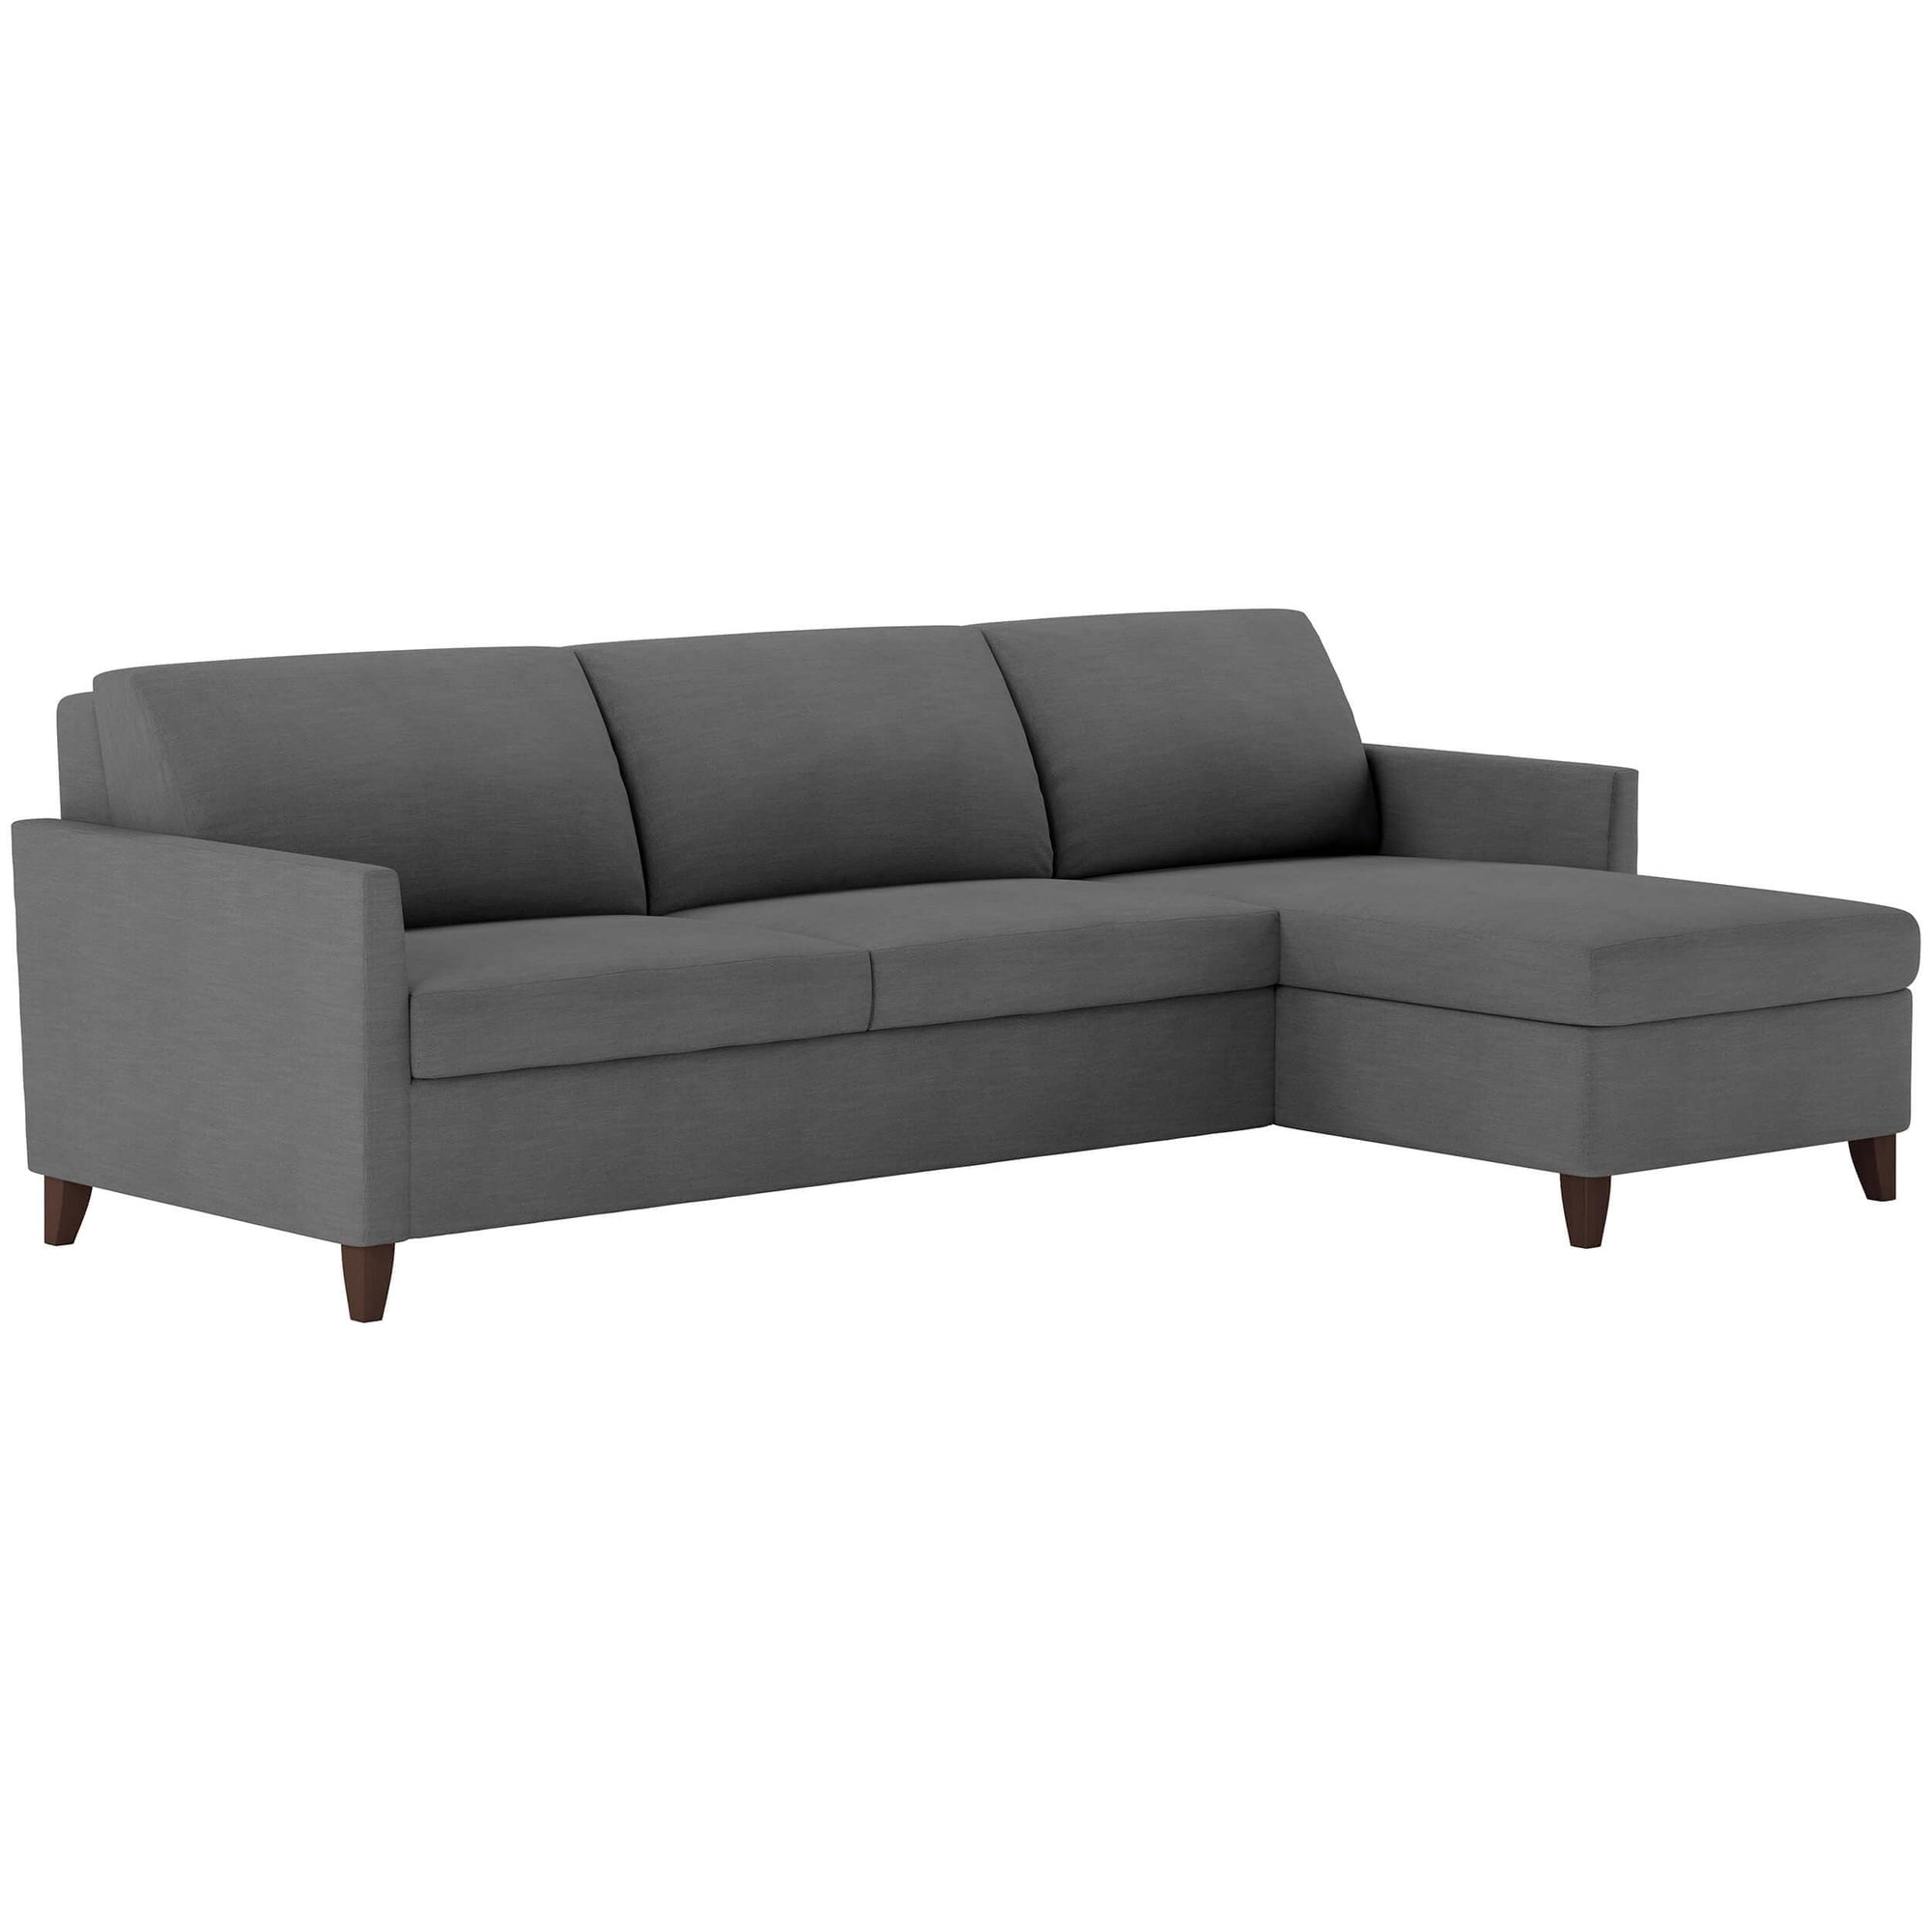 American Leather Harris Queen Sleeper Sectional, Suede Life Heathered  Flannel